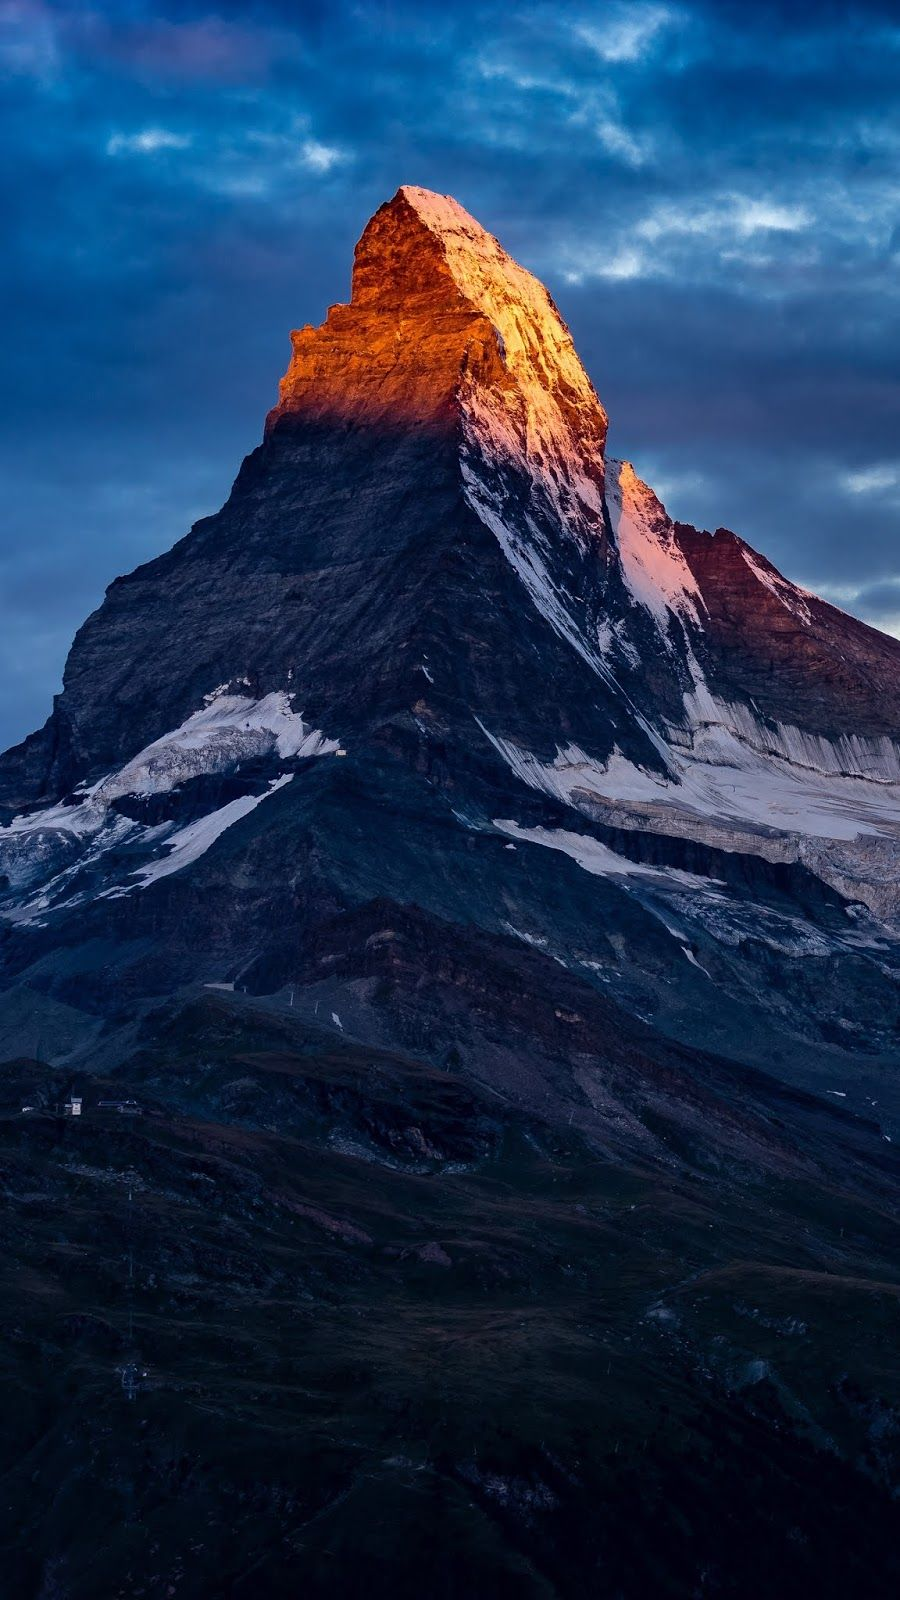 Mountain Peak Zermatt Landscape Wallpaper Nature Wallpaper Mountain Wallpaper